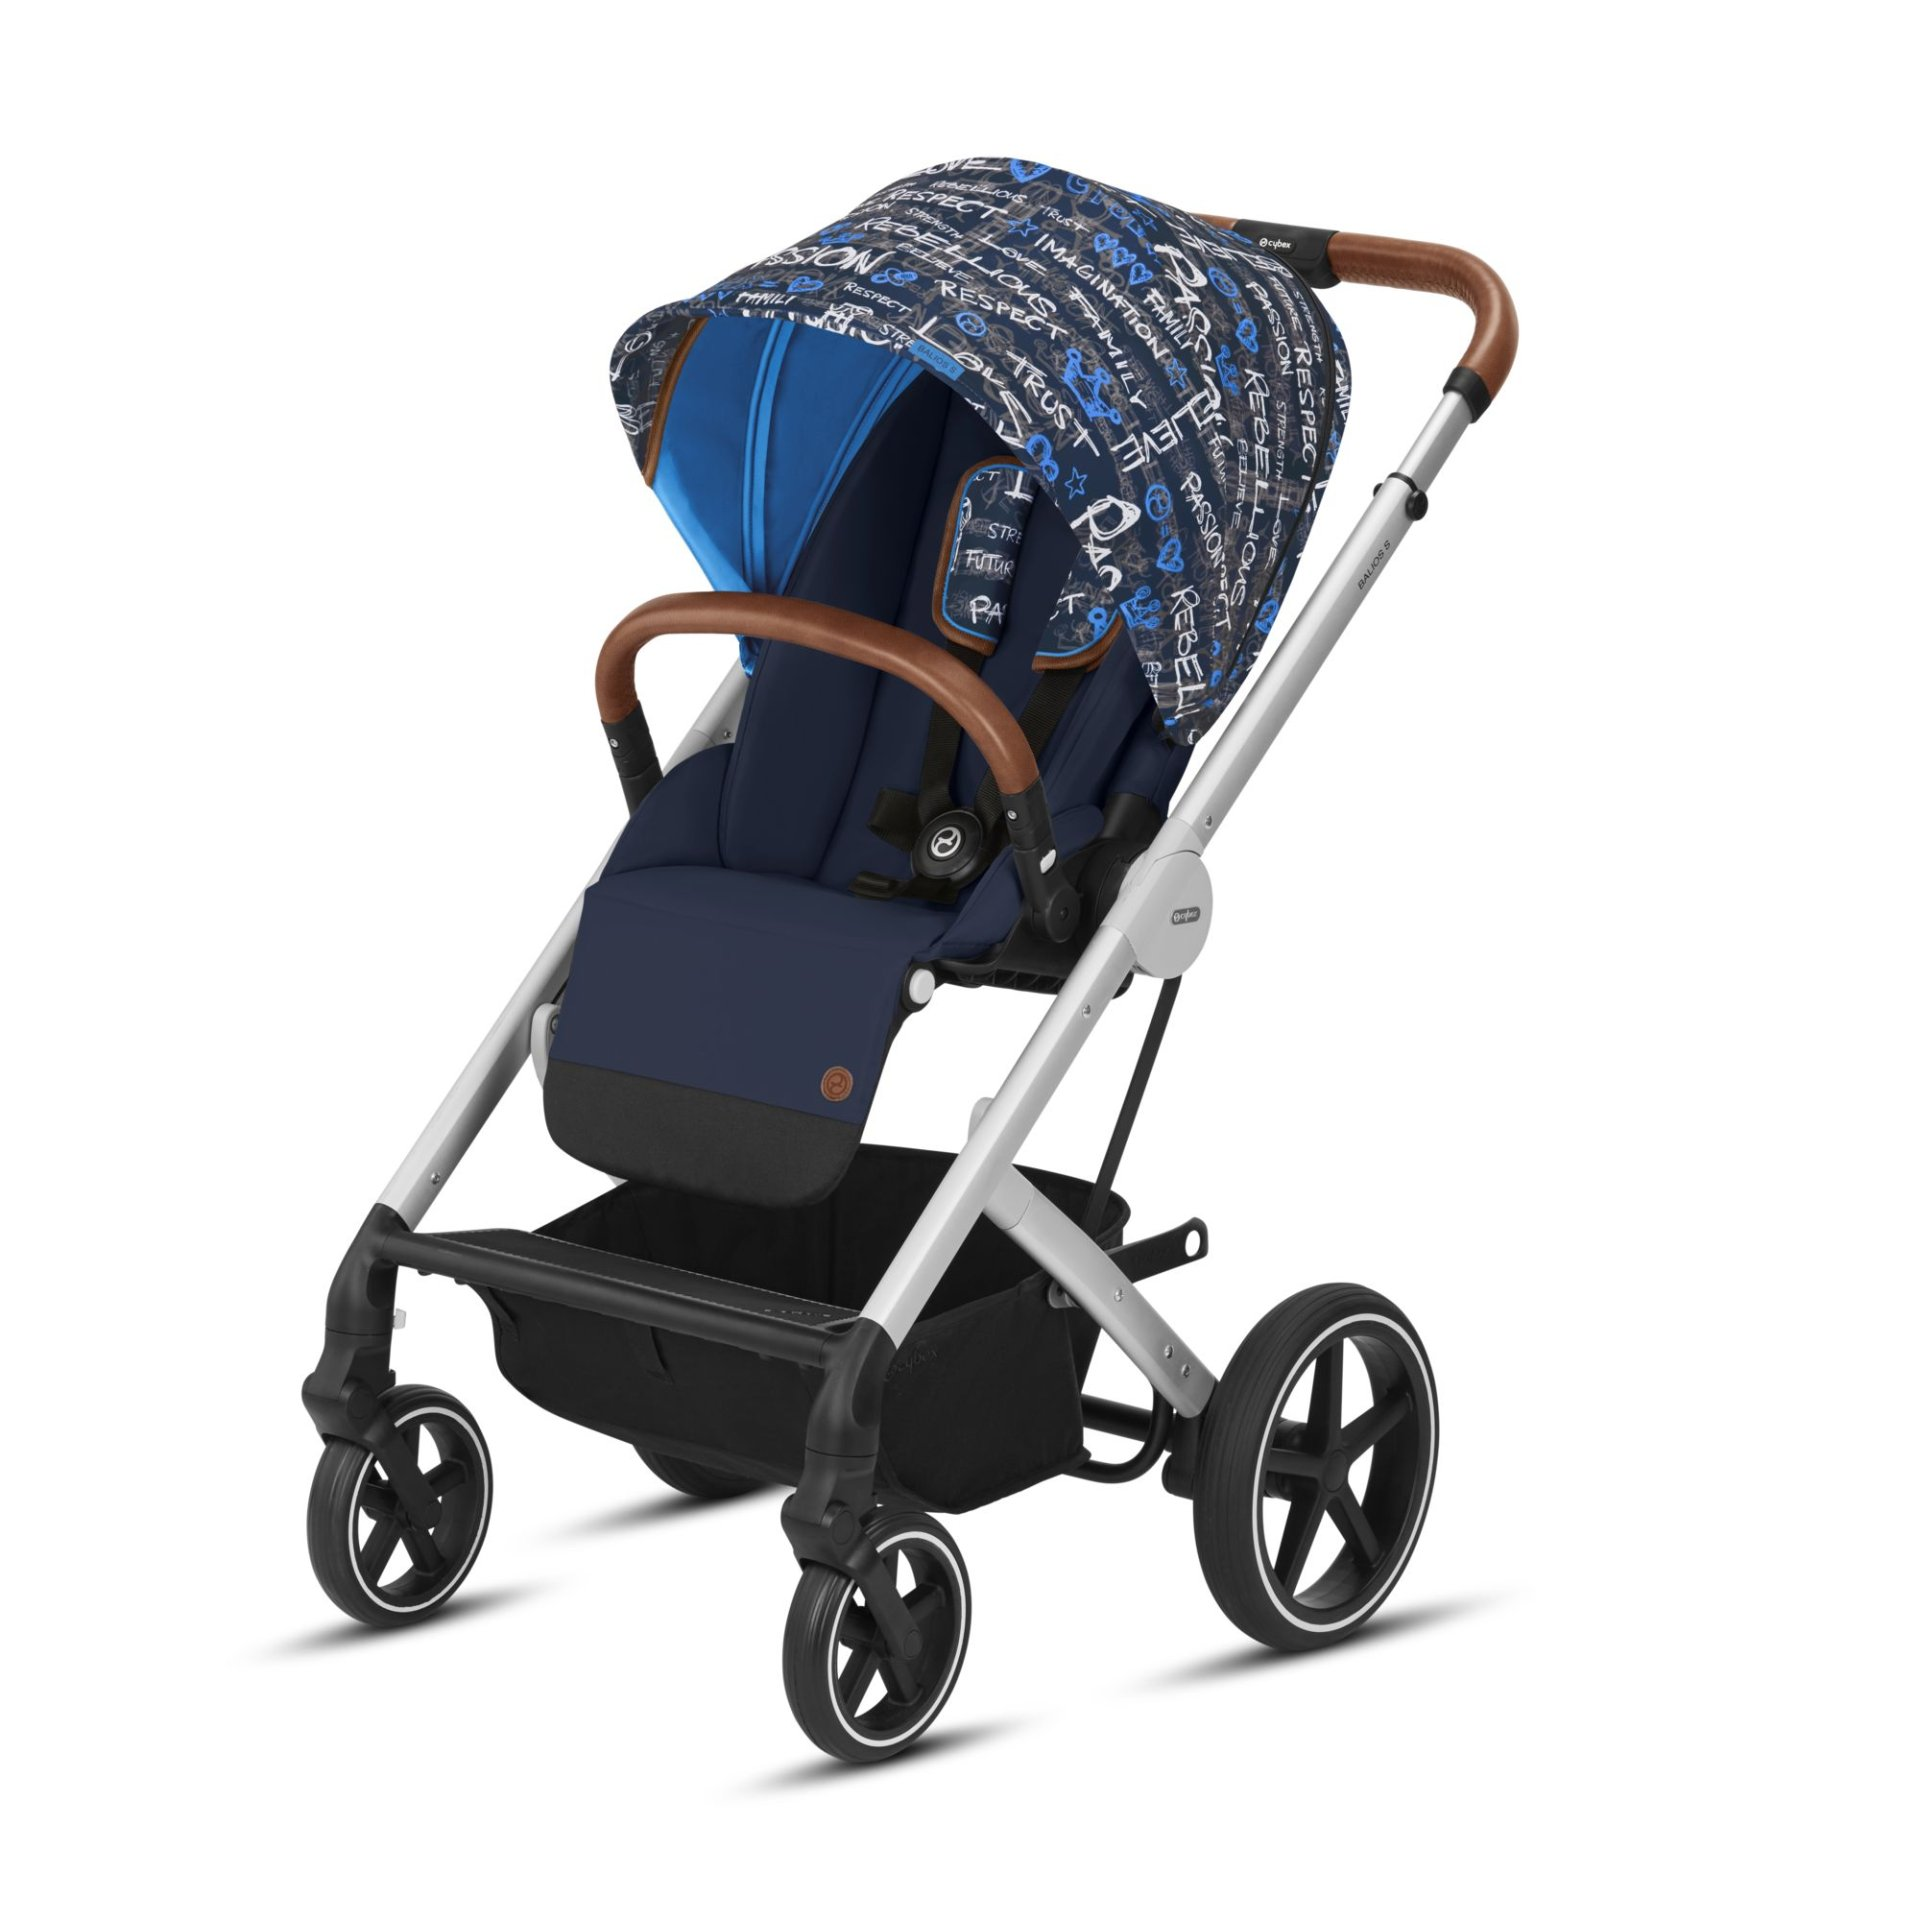 cybex gold values for life stroller balios s 2019 trust. Black Bedroom Furniture Sets. Home Design Ideas